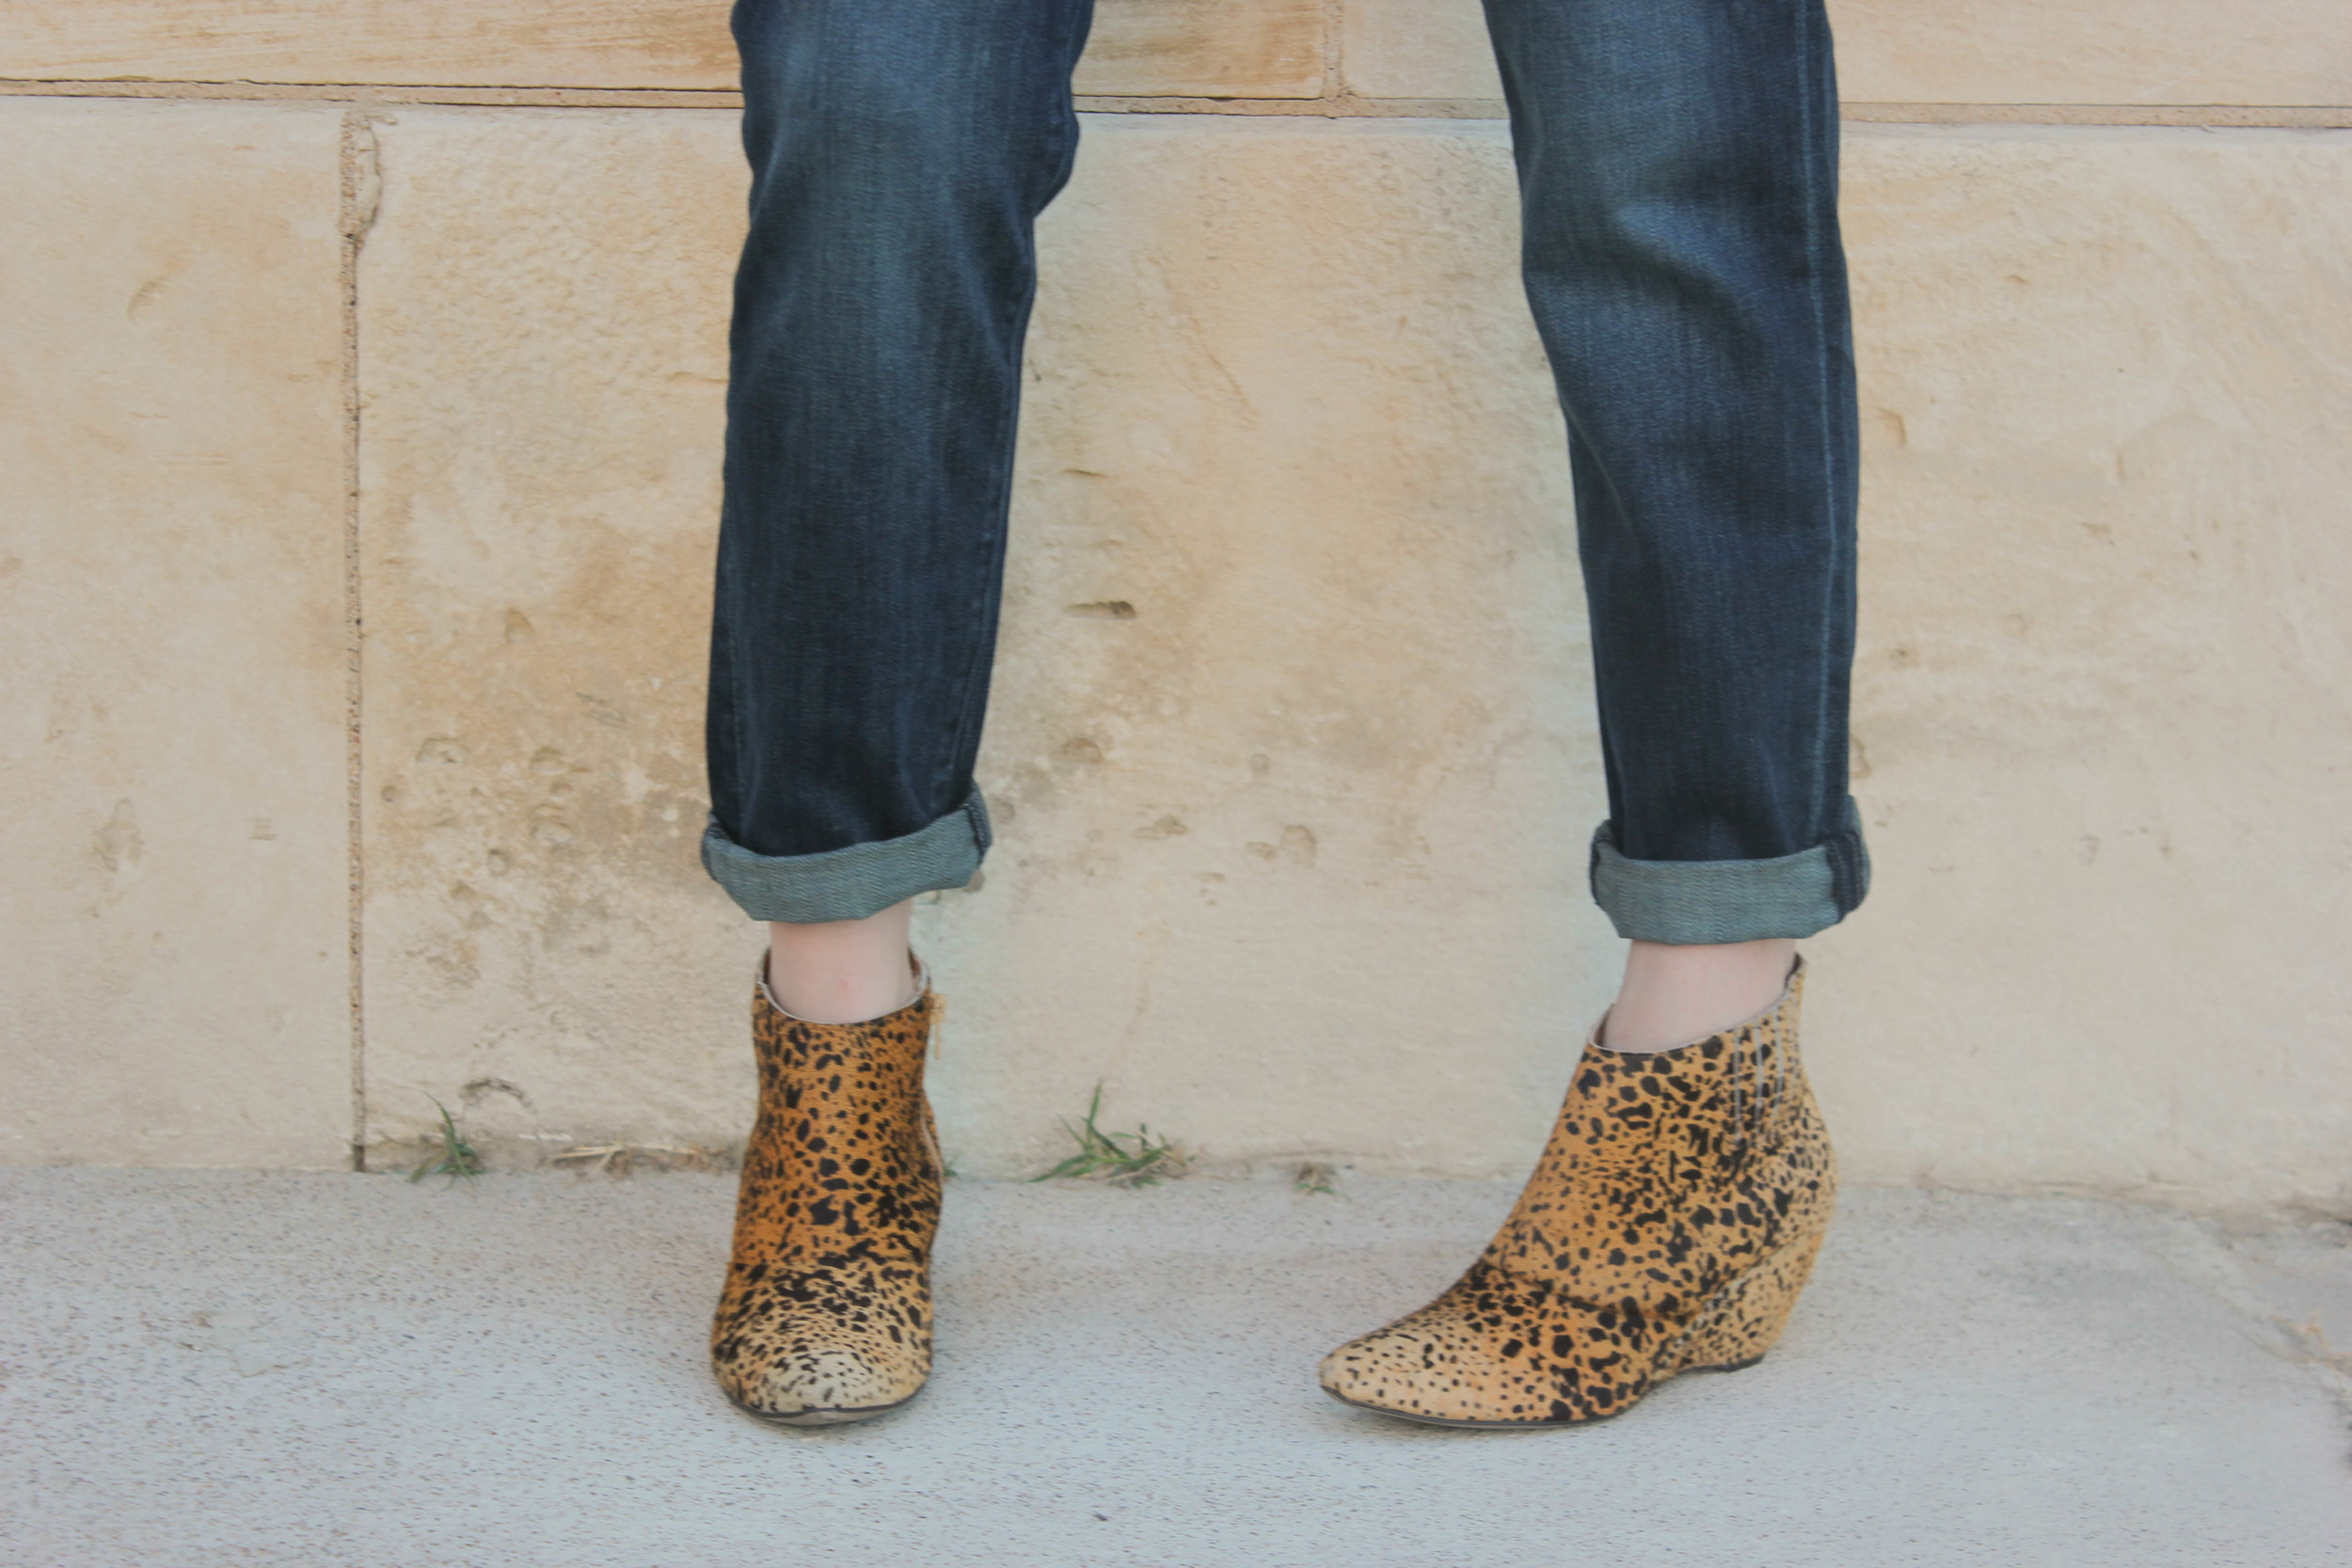 DL Riley Boyfriend Jeans in Nassau, Matisse Nugent Booties